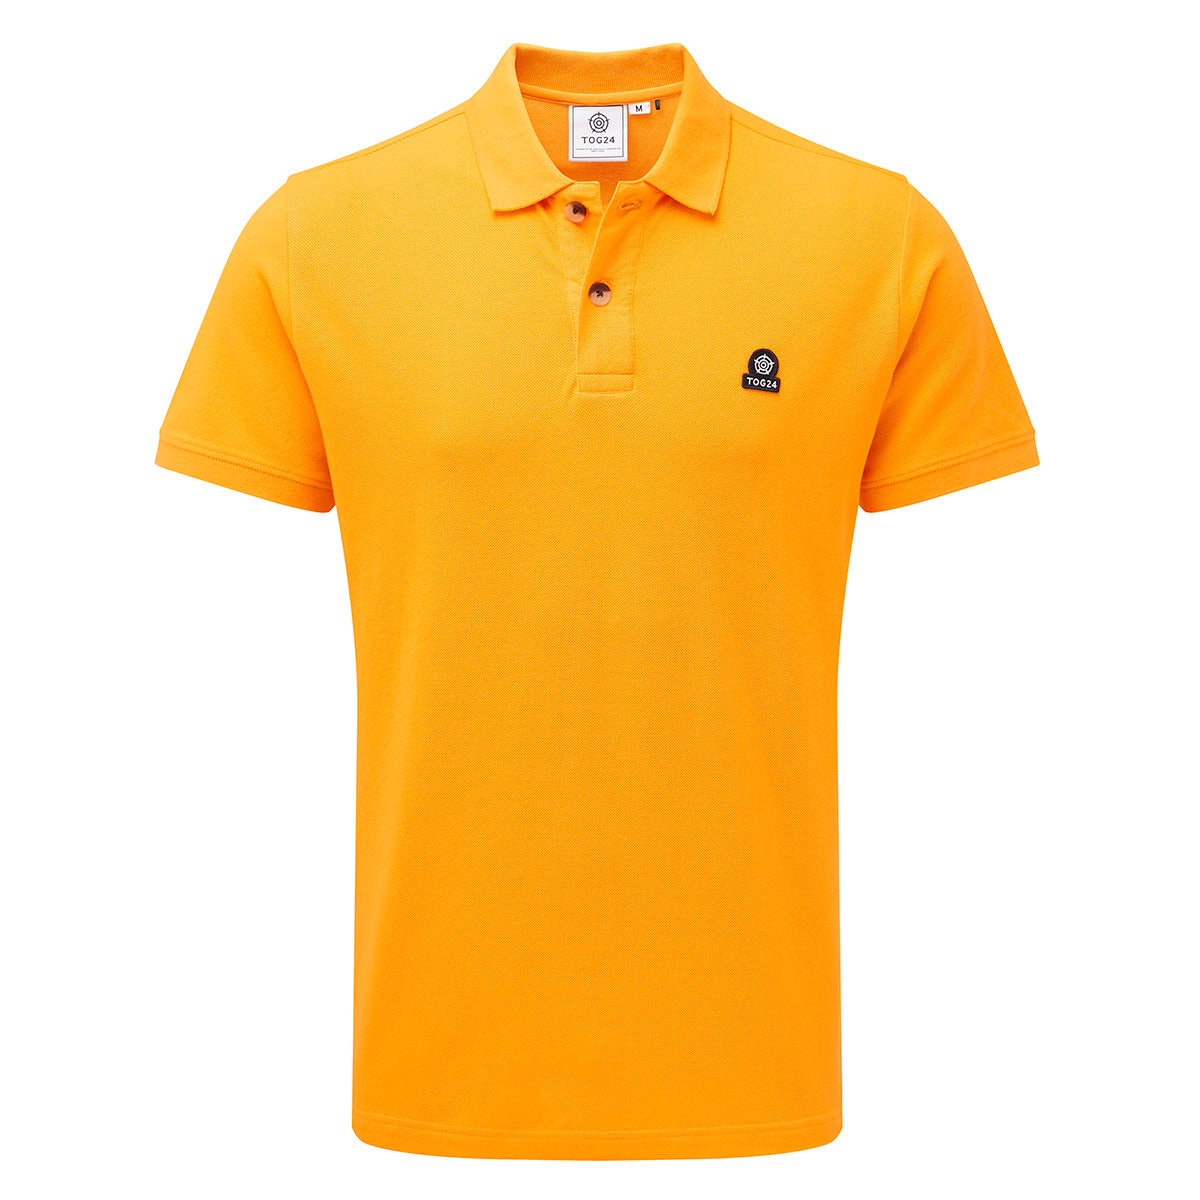 Percy Mens Pique Polo Shirt - Buttercup image 4